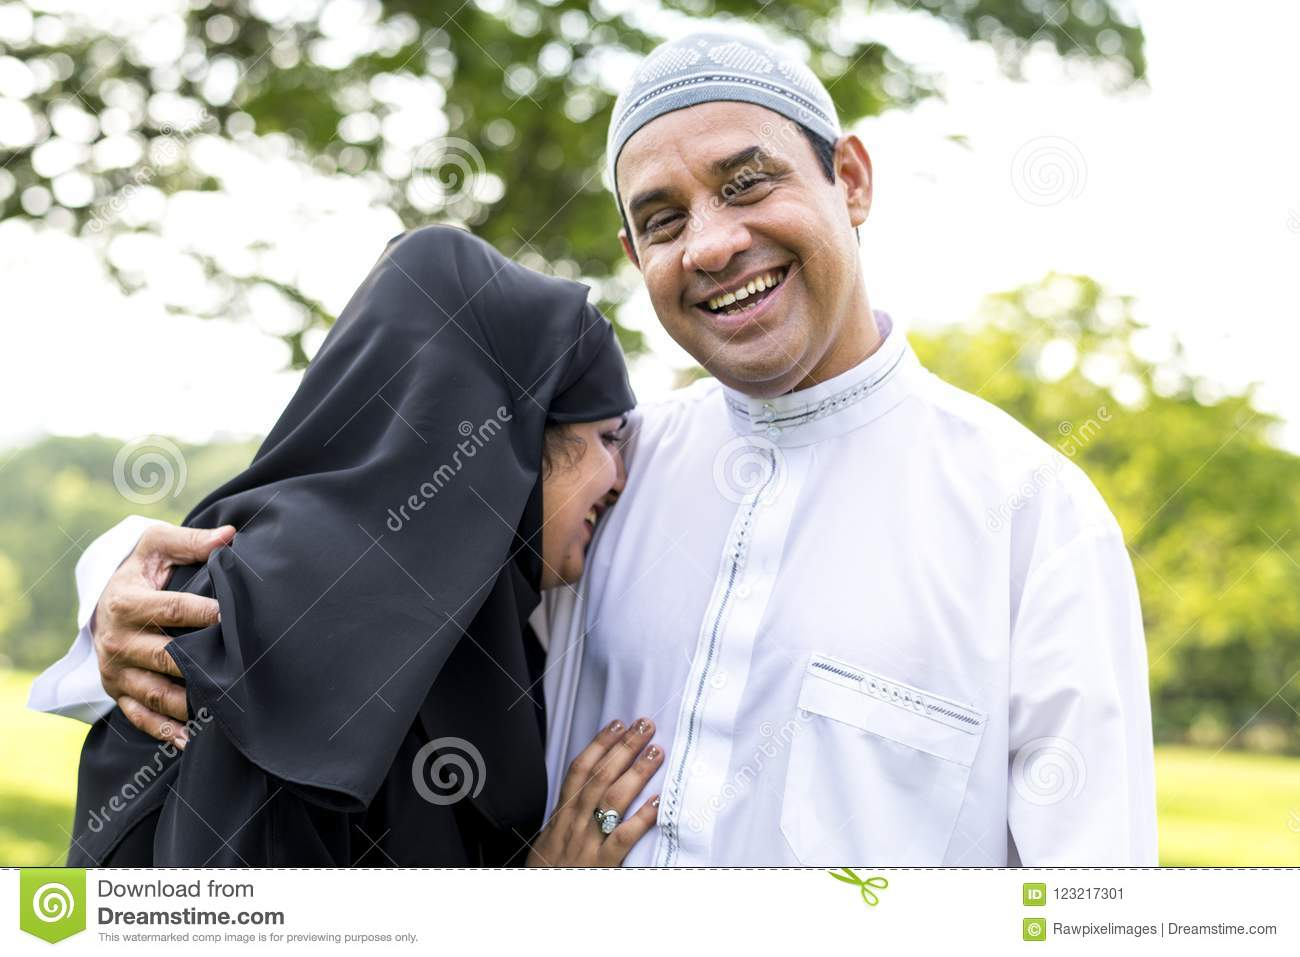 Muslim Married Couple In The Park Stock Image - Image of